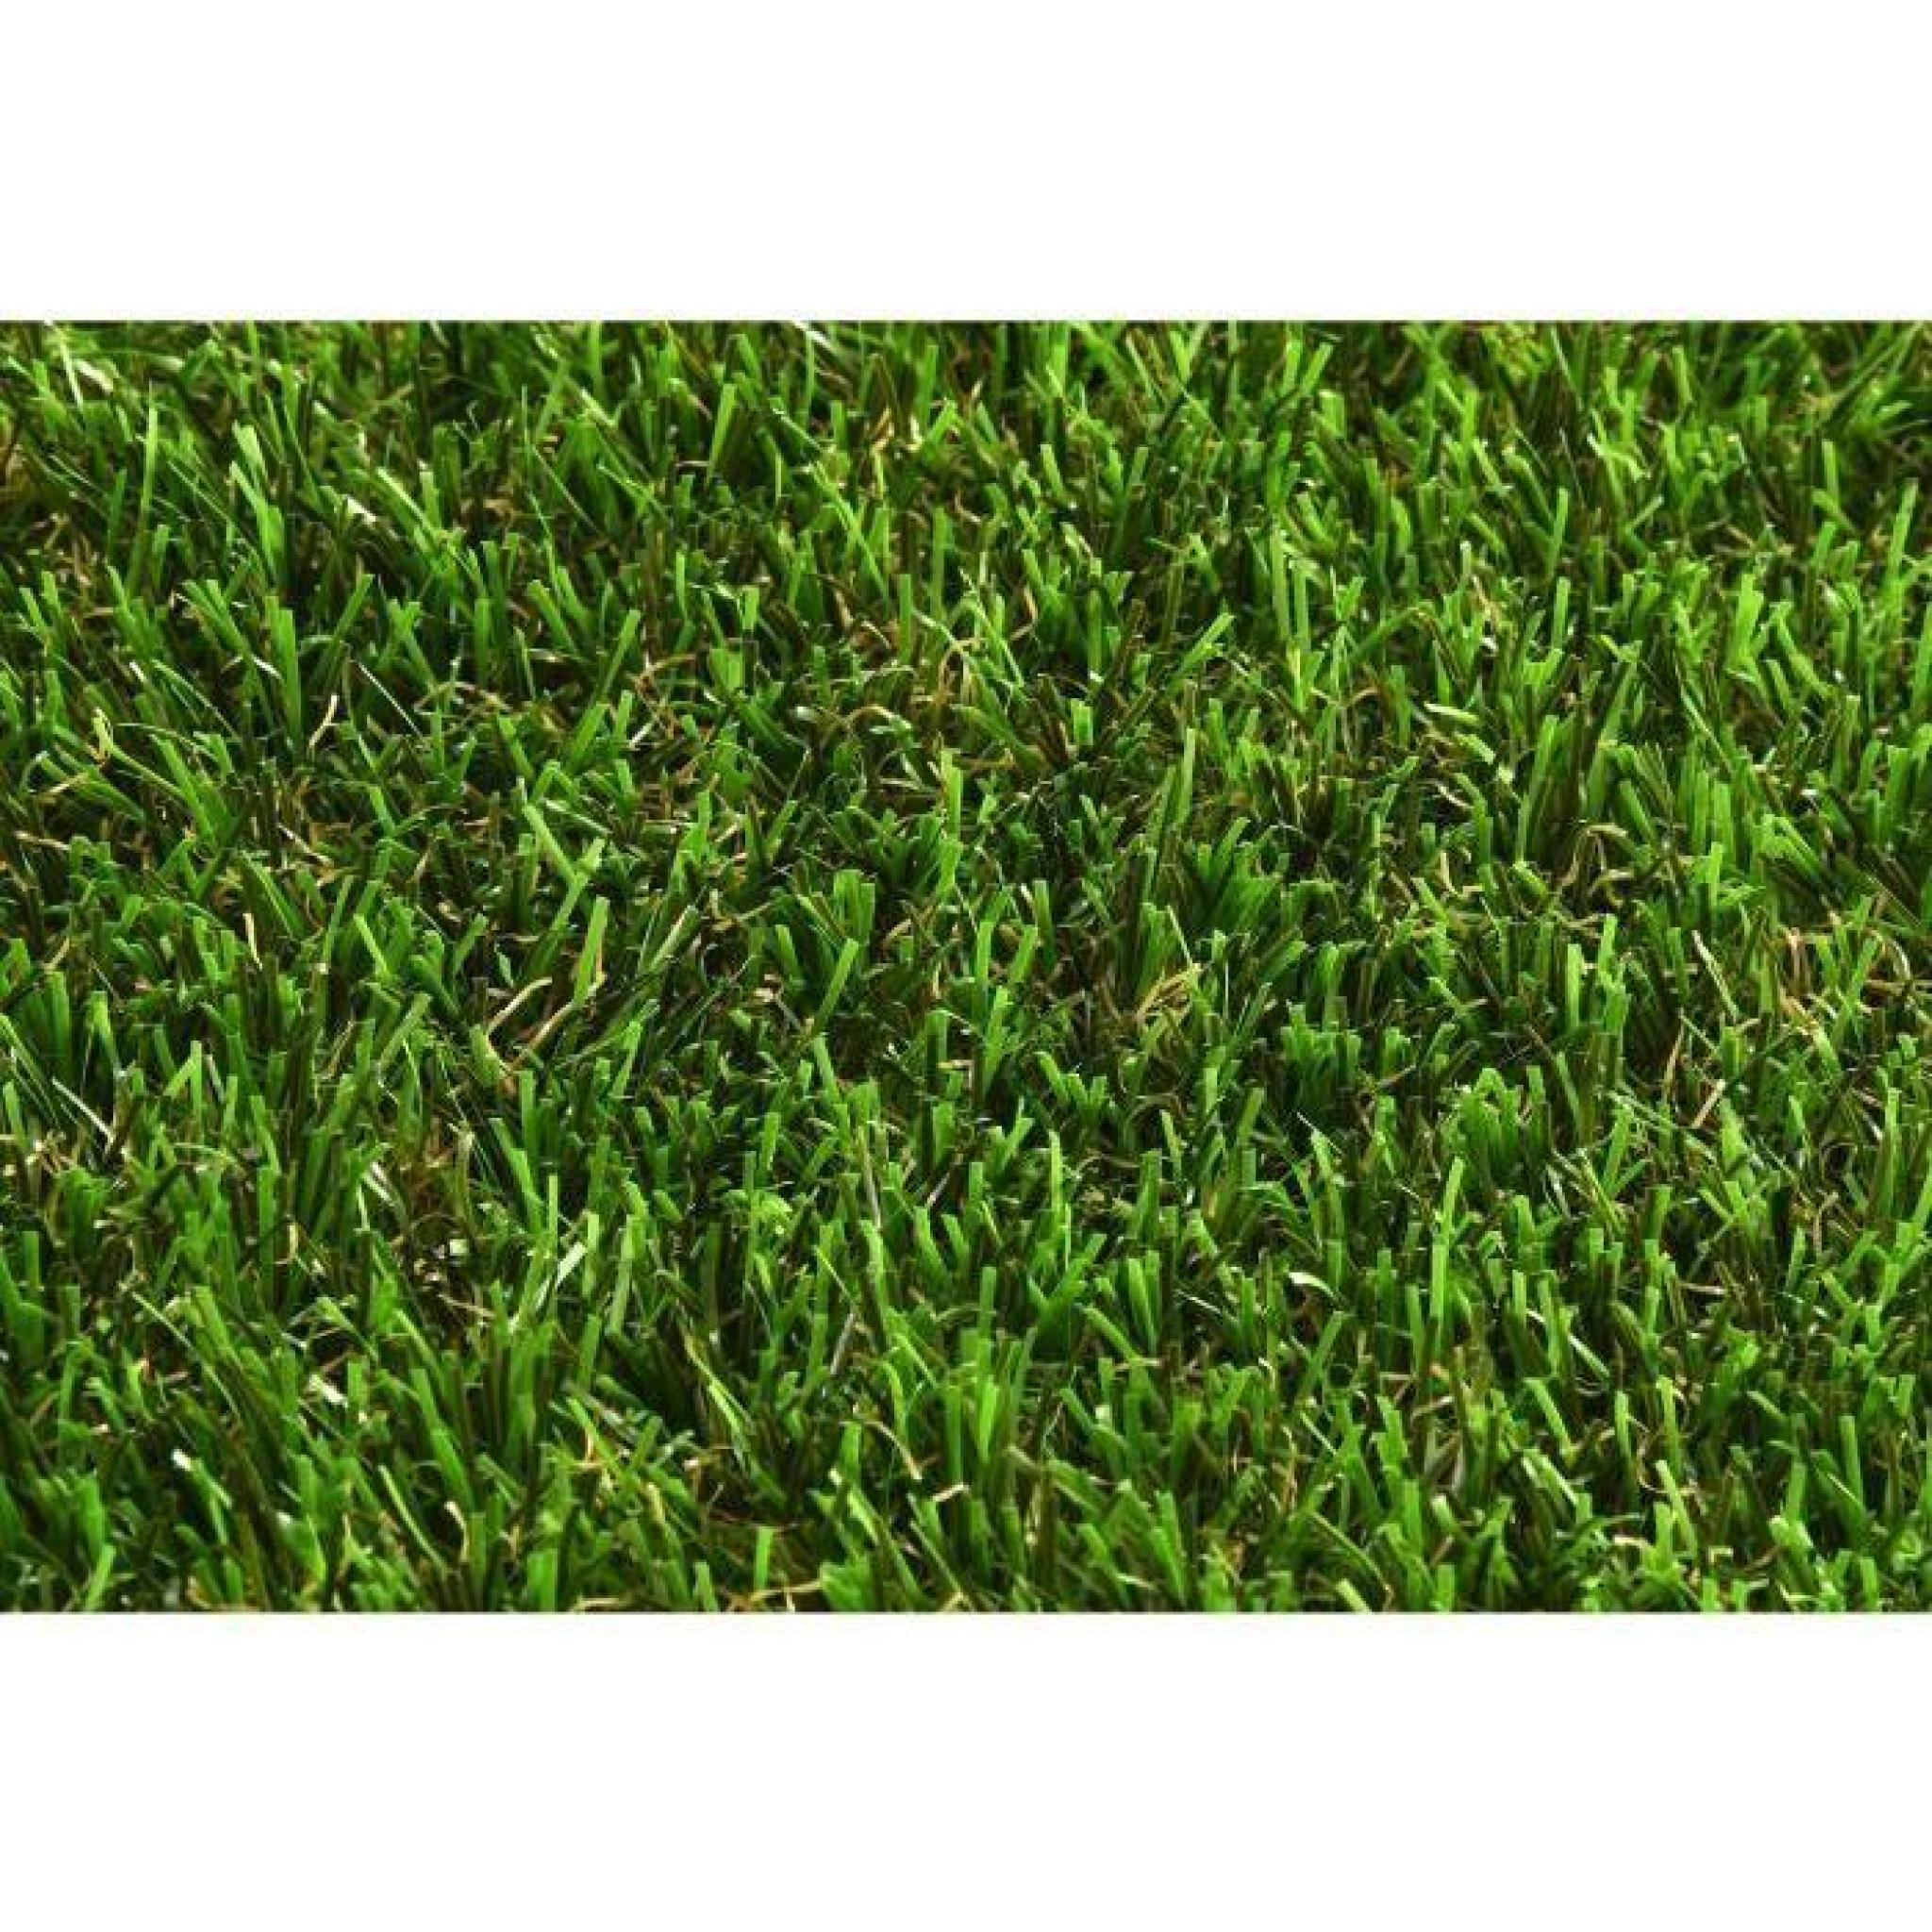 exelgreen gazon synth tique diamond gb 5835 35 mm bobinot de 2x25 m achat vente gazon. Black Bedroom Furniture Sets. Home Design Ideas